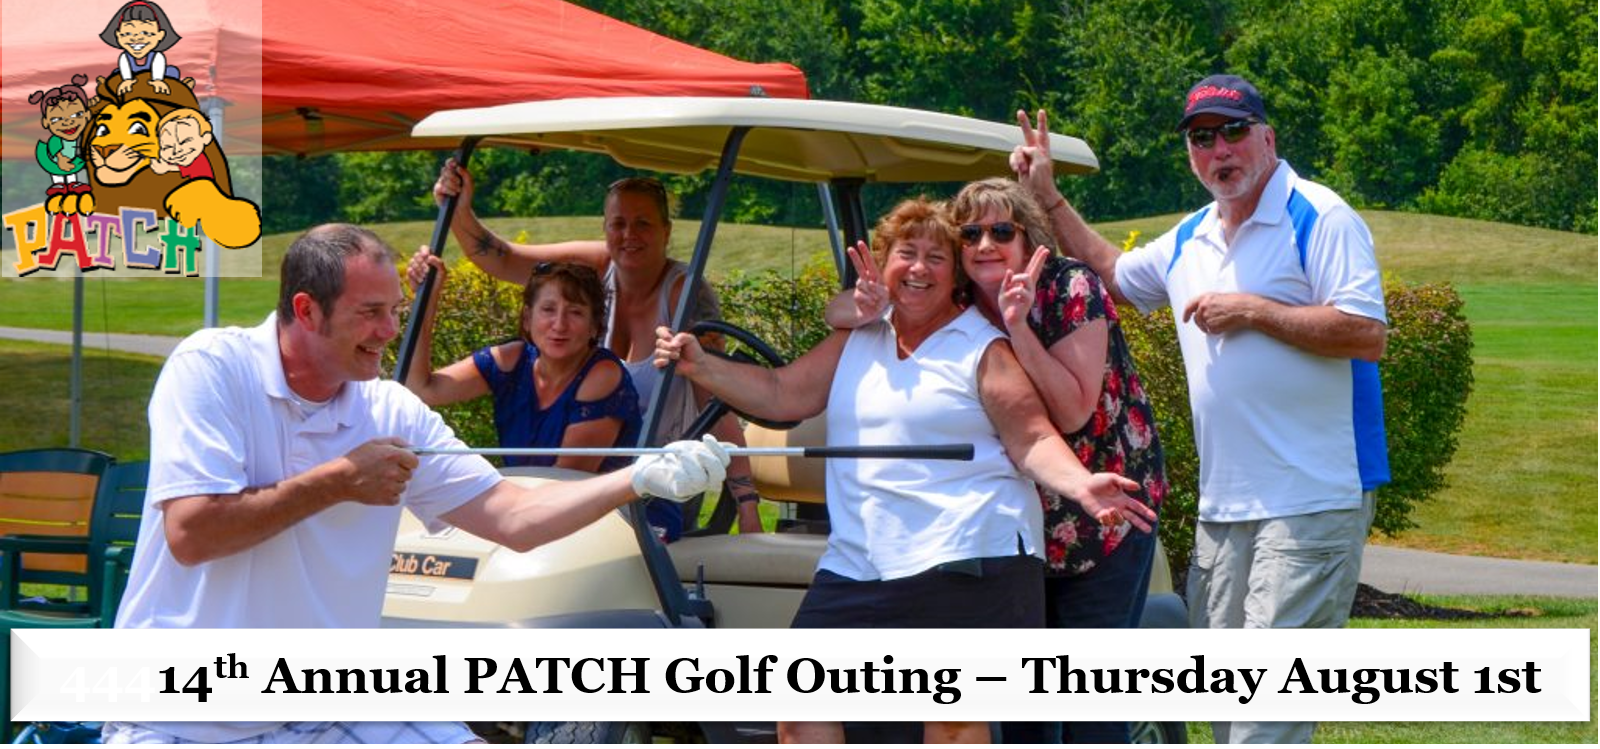 IUPAT DC6 14th Annual golf outing is on August 1, 2019